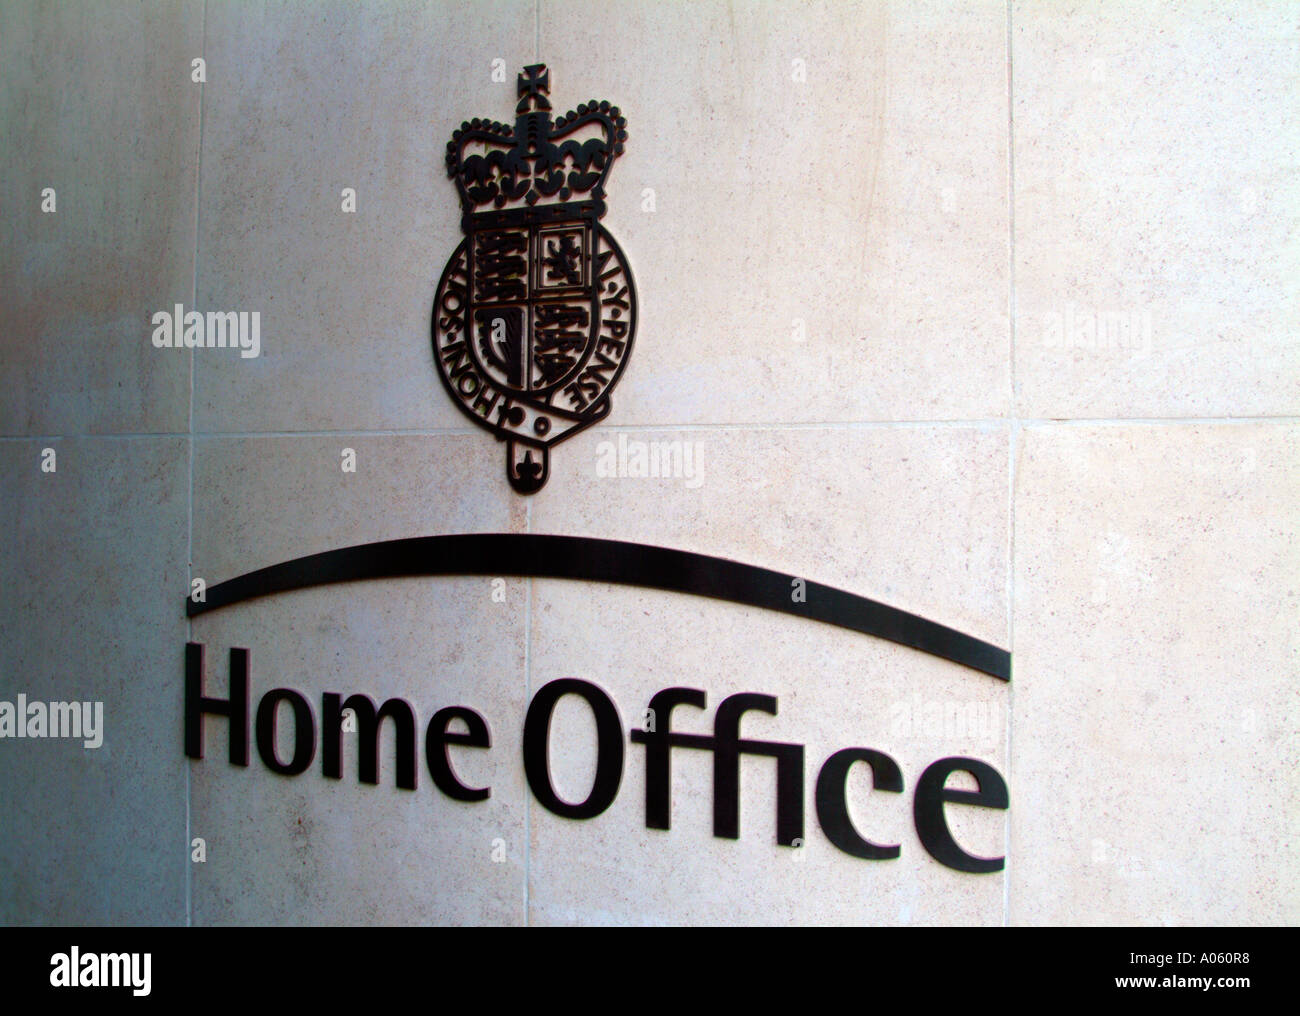 Home Office logo on wall of the Home Office, London, UK Stock Photo ...